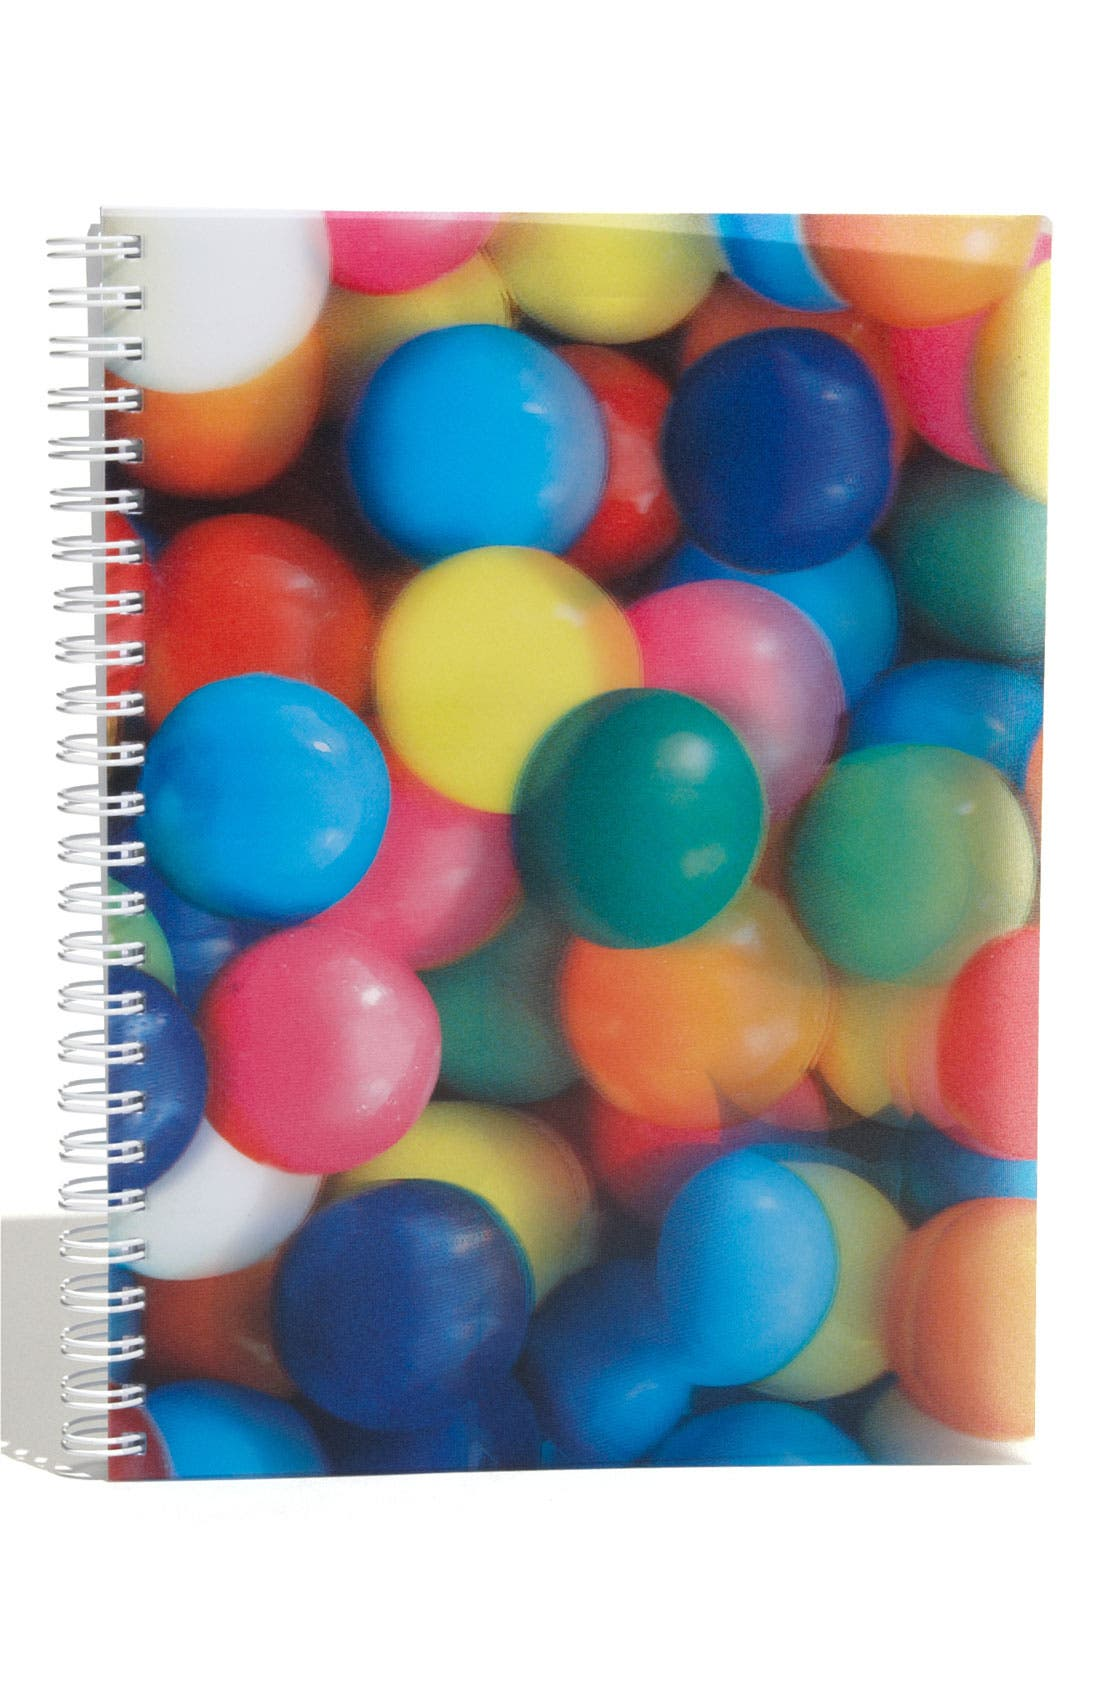 'Candy' Journal,                             Main thumbnail 1, color,                             960